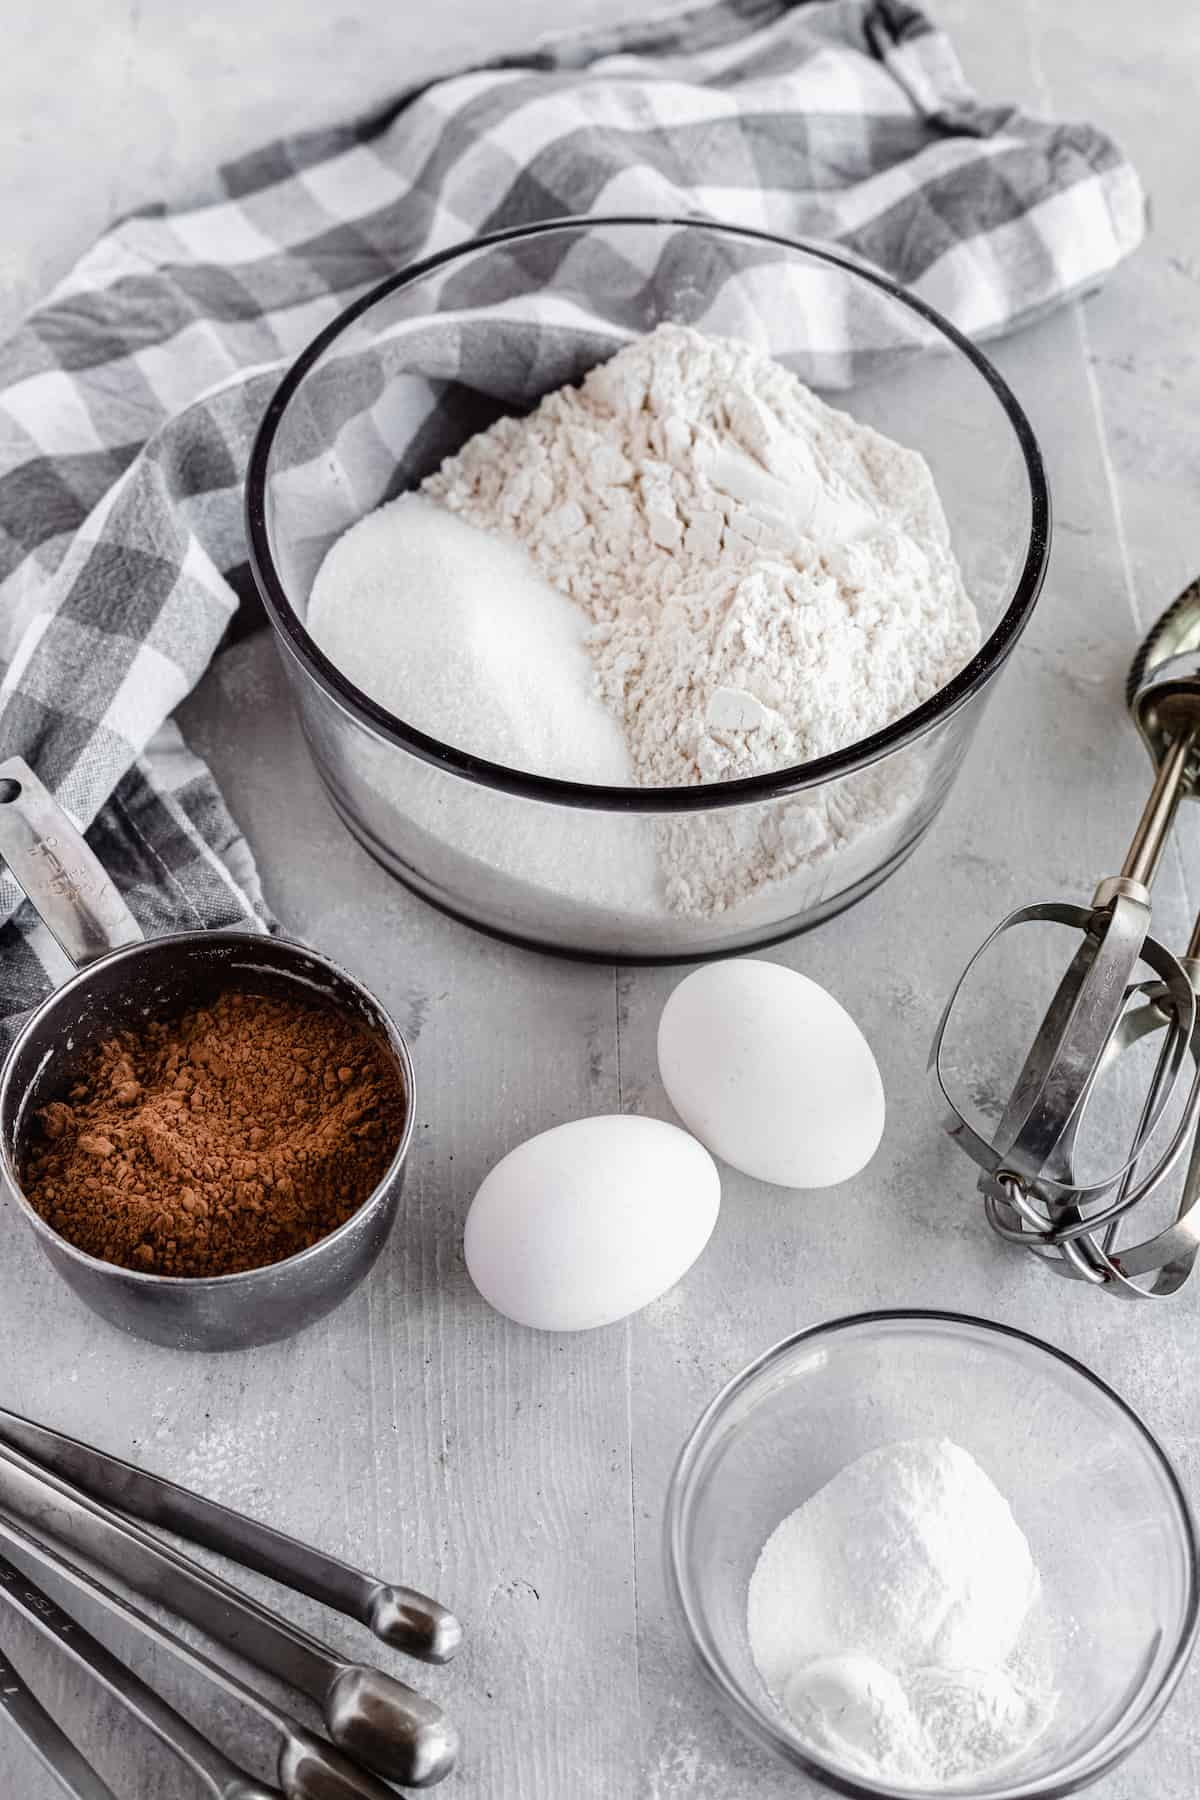 Cocoa Powder, Eggs, Baking Soda, Baking Powder and the Rest of the Cake Ingredients Arranged on a Gray Countertop